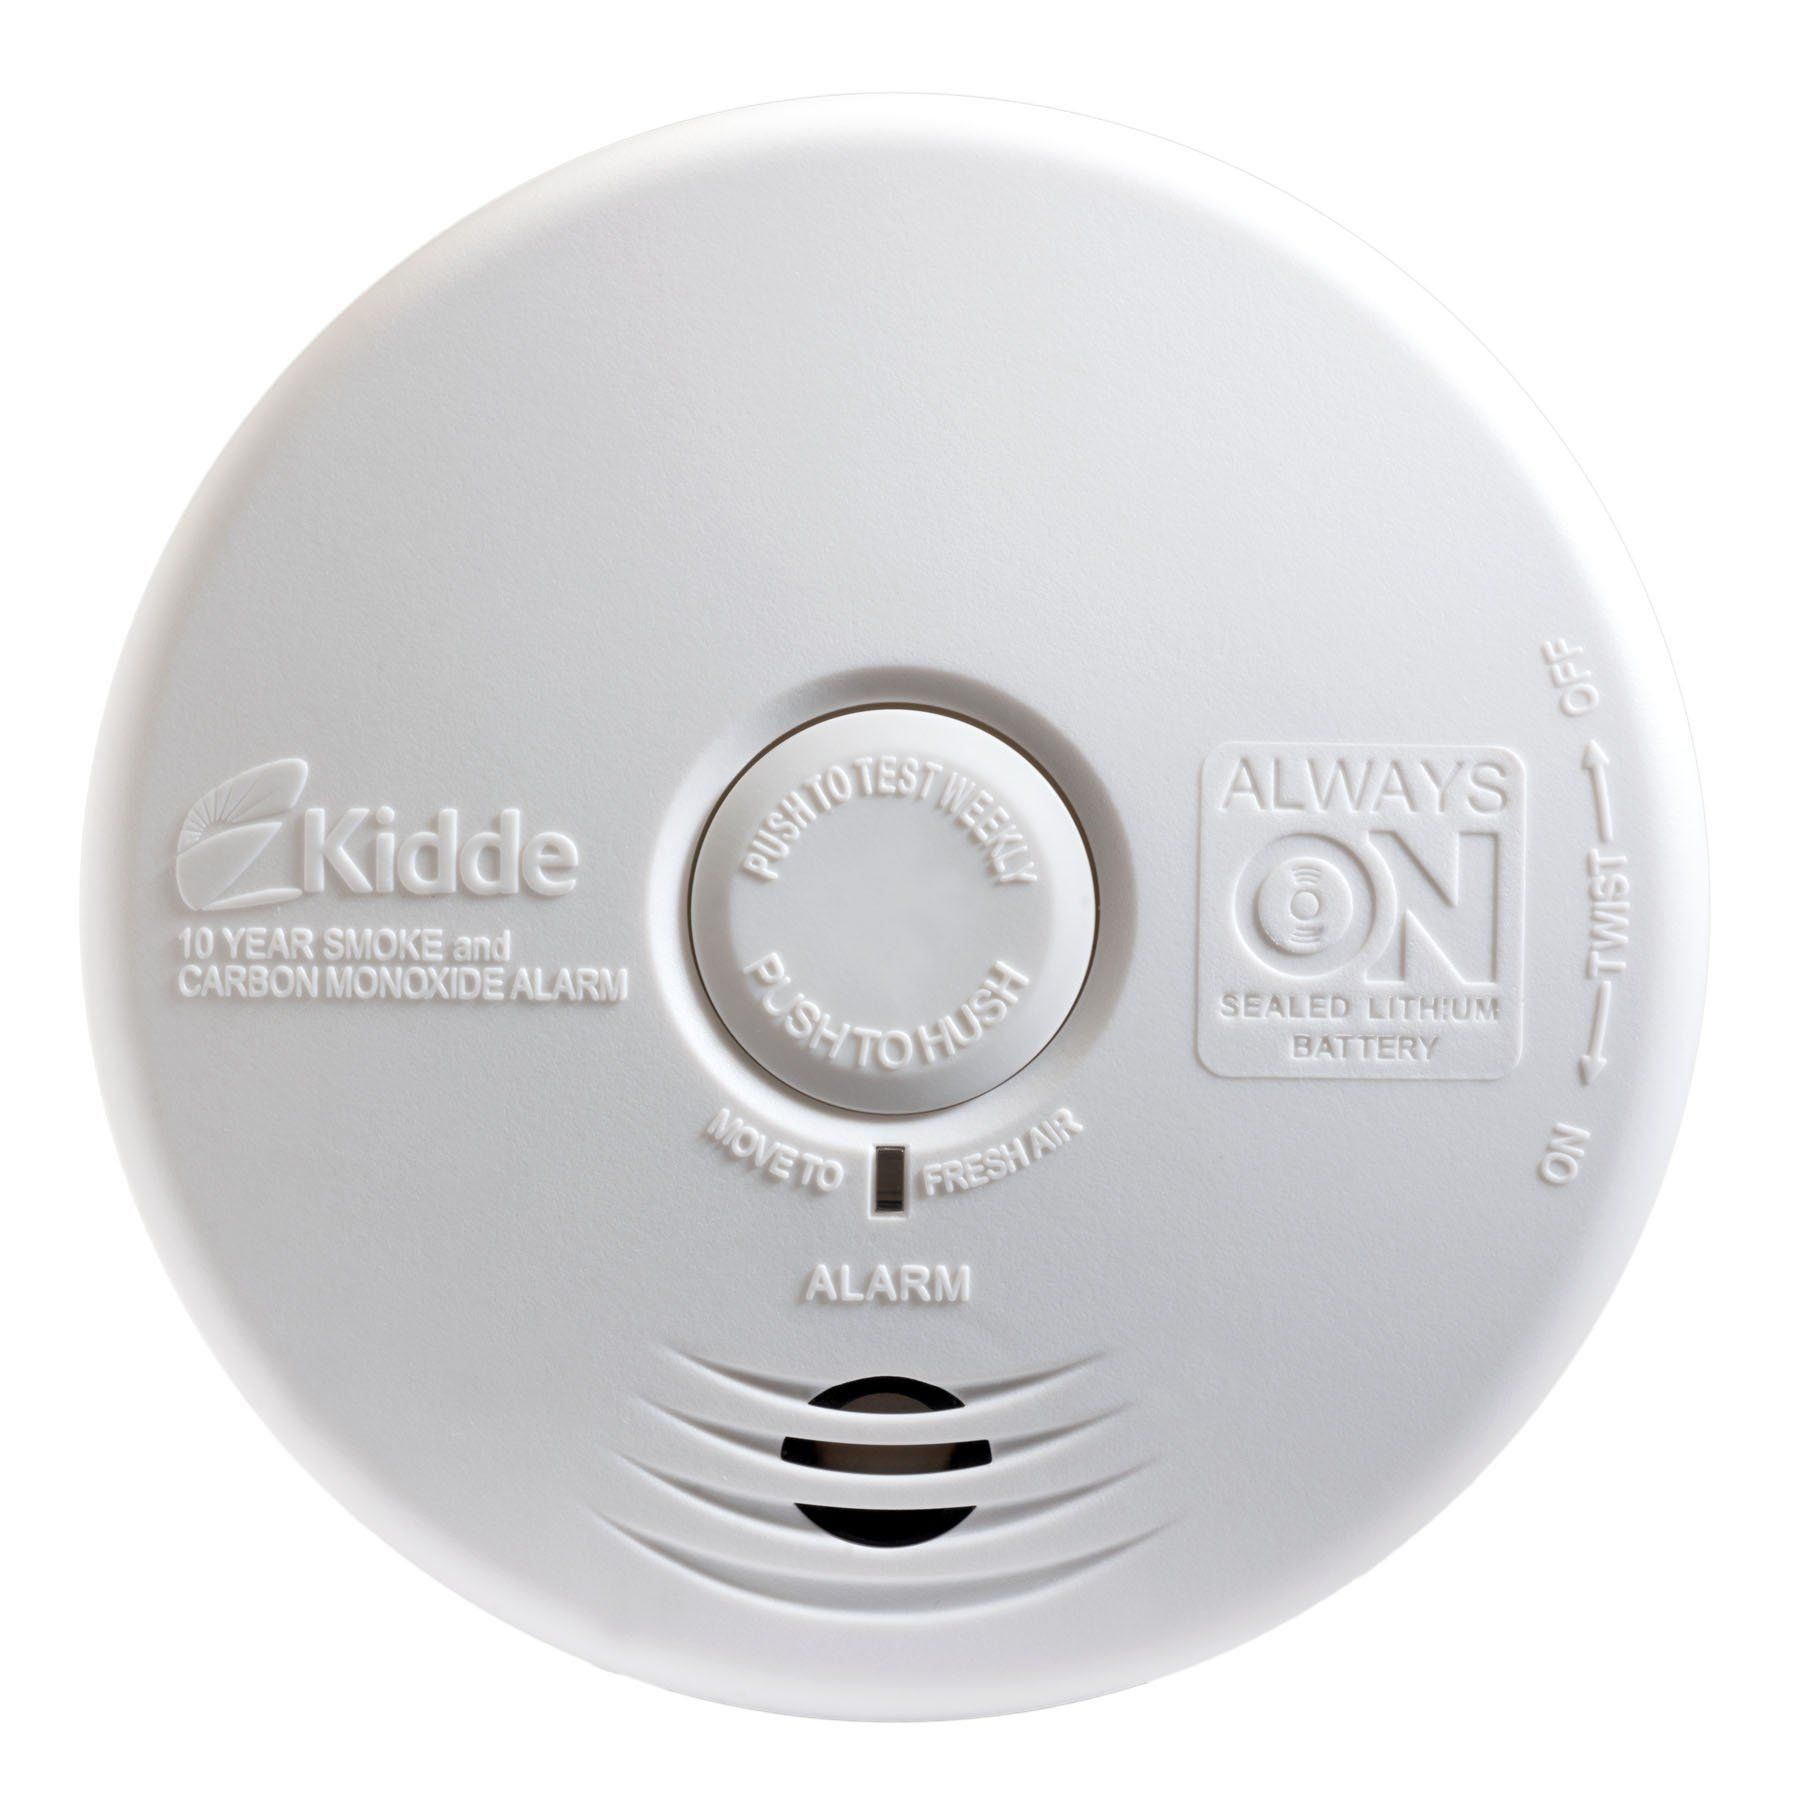 Kidde P3010k Co Worry Free Kitchen Photoelectric Smoke And Carbon Monoxide Alarm With 10 Year Sealed Battery Fishouse Carbon Monoxide Alarms Smoke Alarms